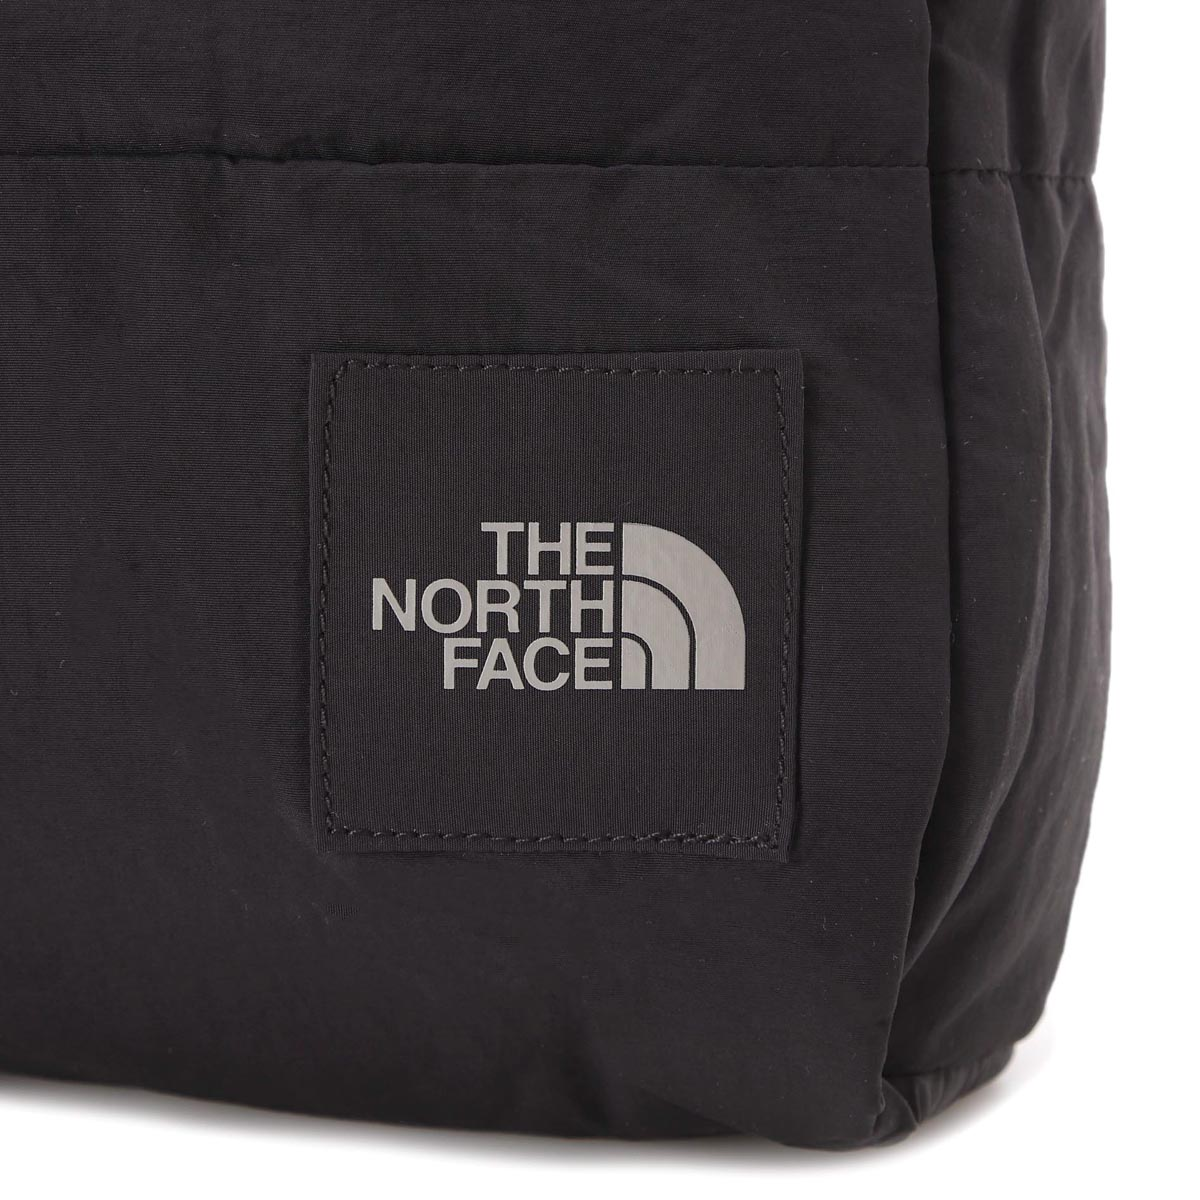 THE NORTH FACE ノースフェイス トートバッグ/CITY VOYAGER TOTE メンズ